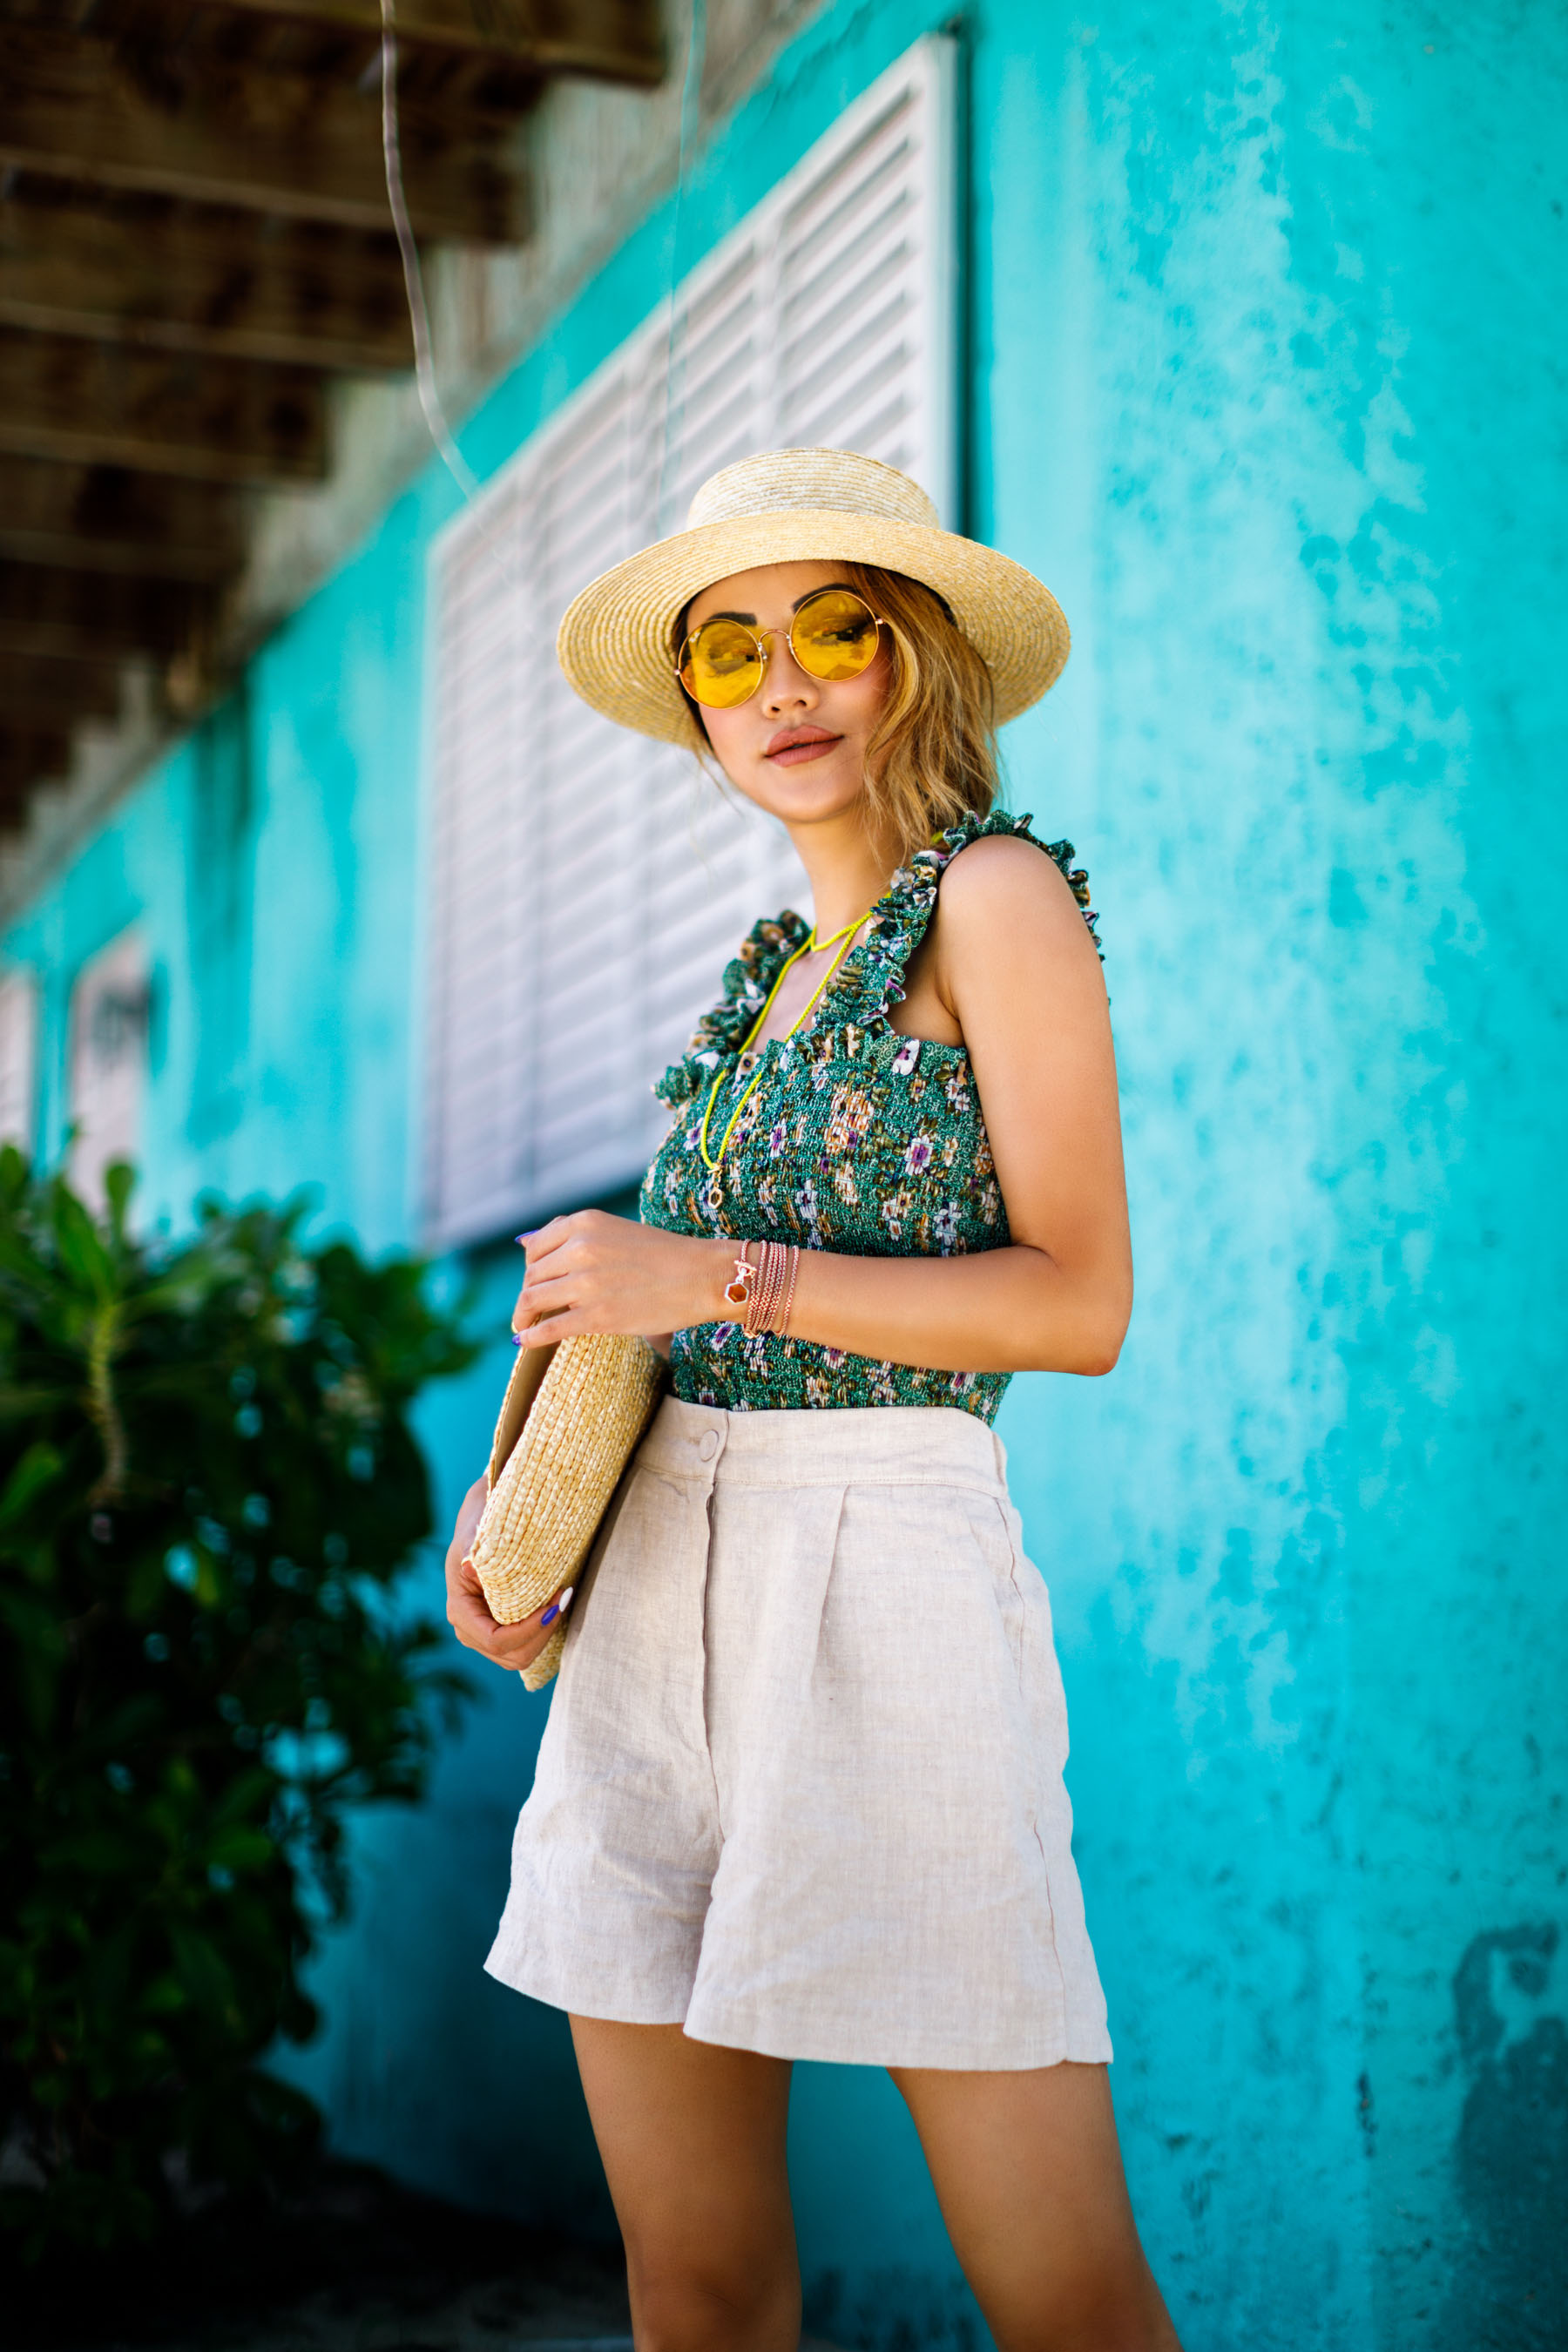 trending Prints to Wear in 2018 - Floral Green Top and linen shorts // NotJessFashion.com